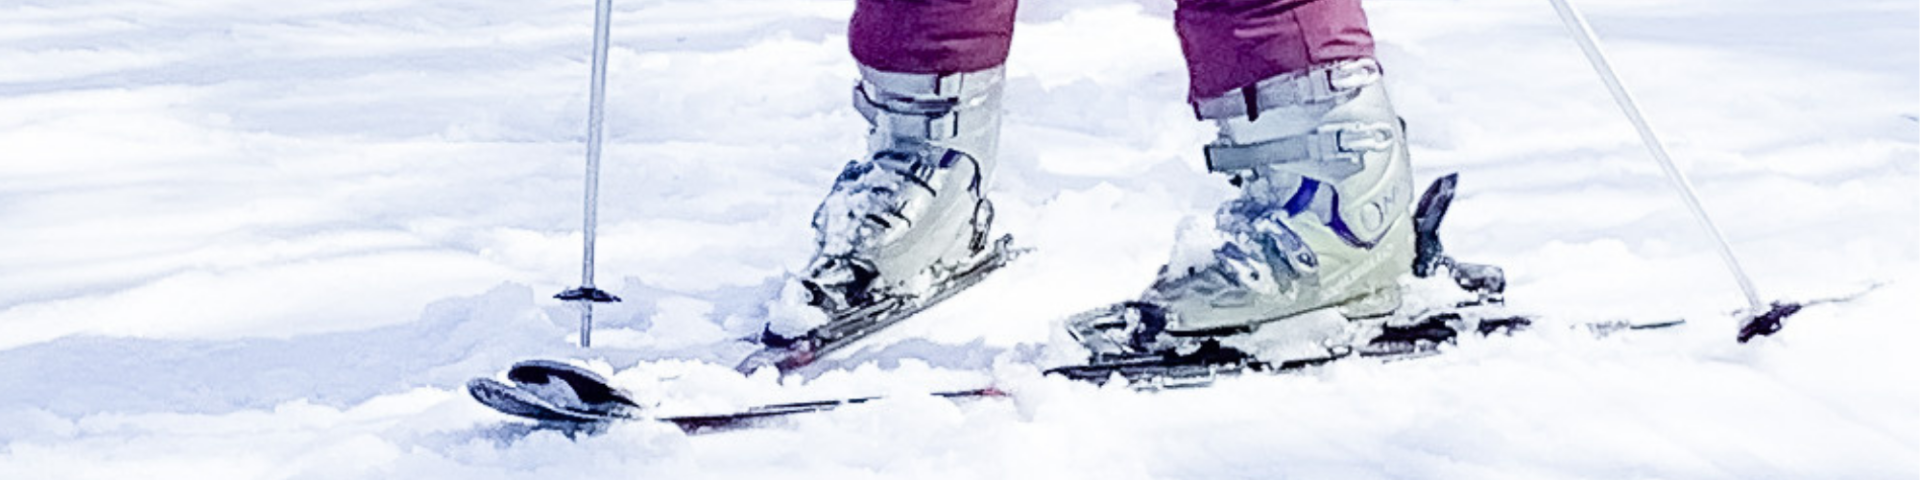 Plus size ski boots for wide calves will make all the difference in your ski day